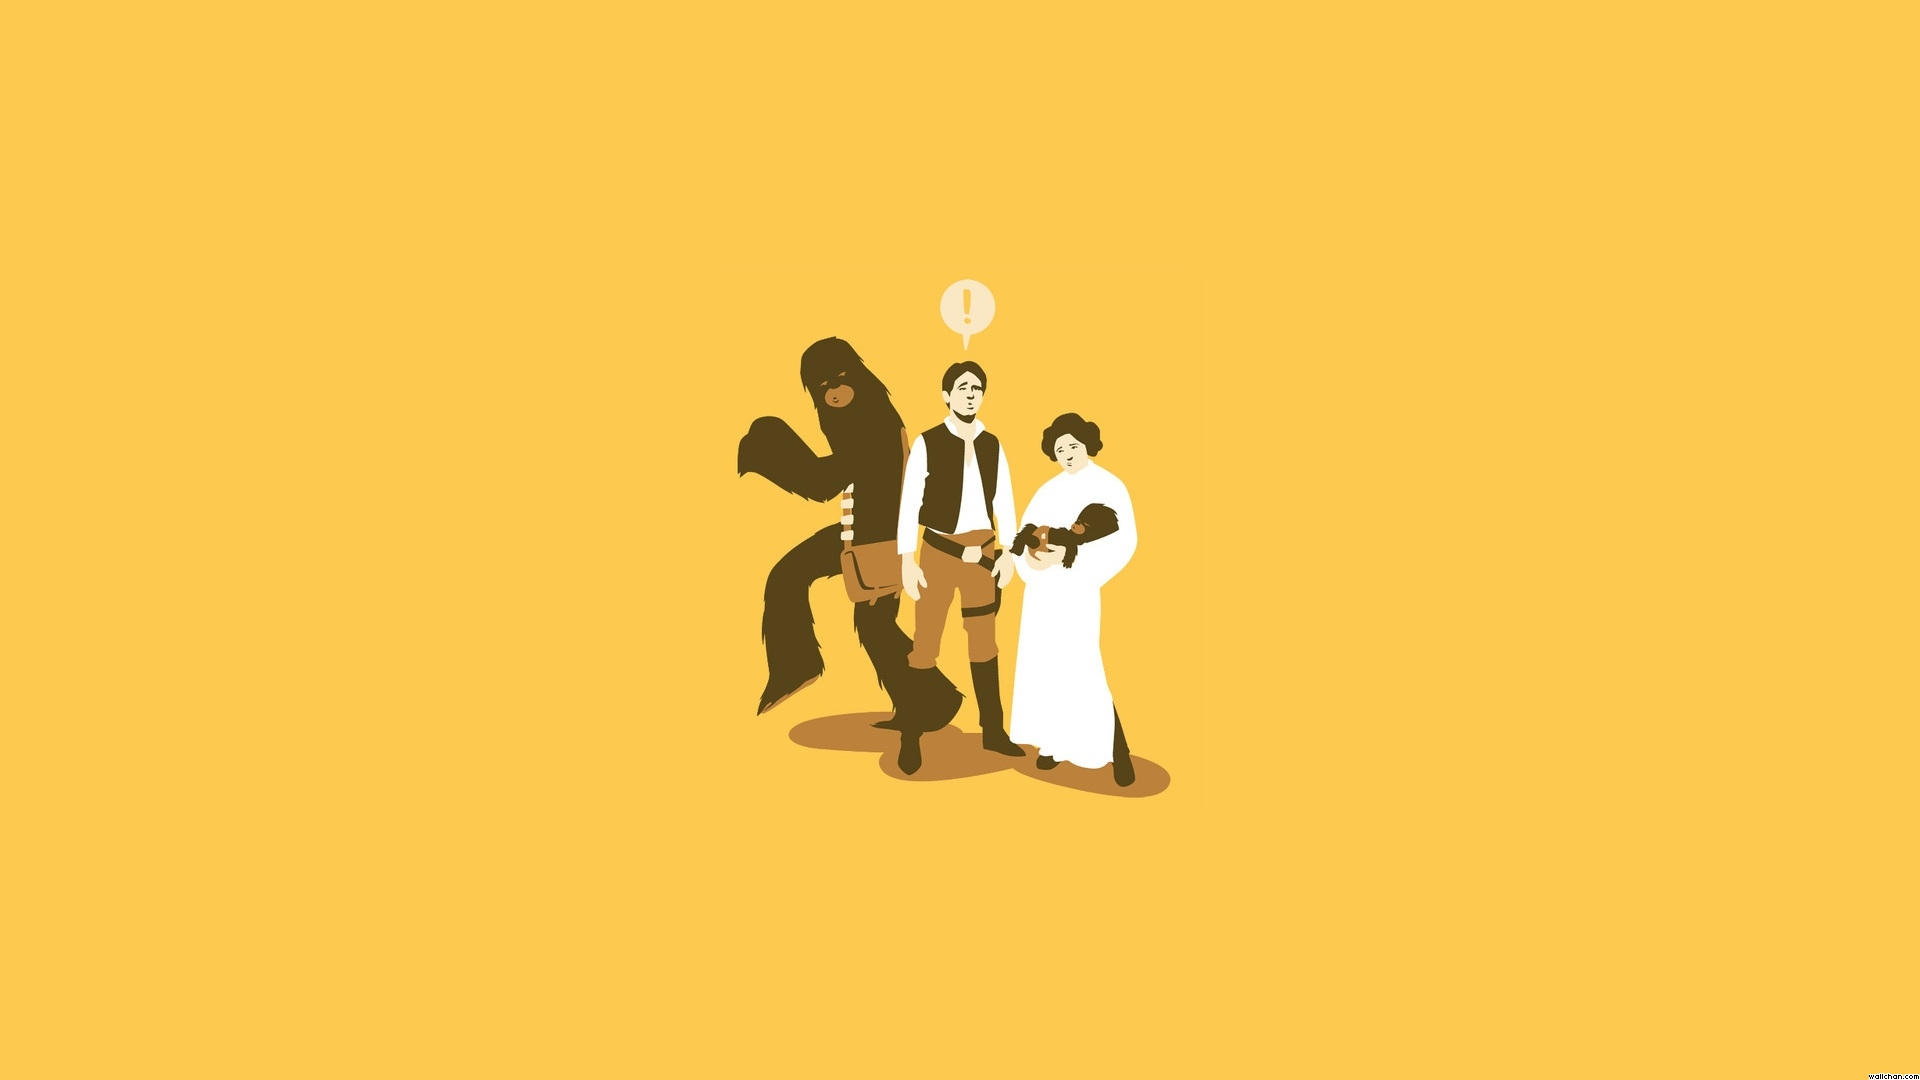 Funny Han, Leia Chewie Wallpaper